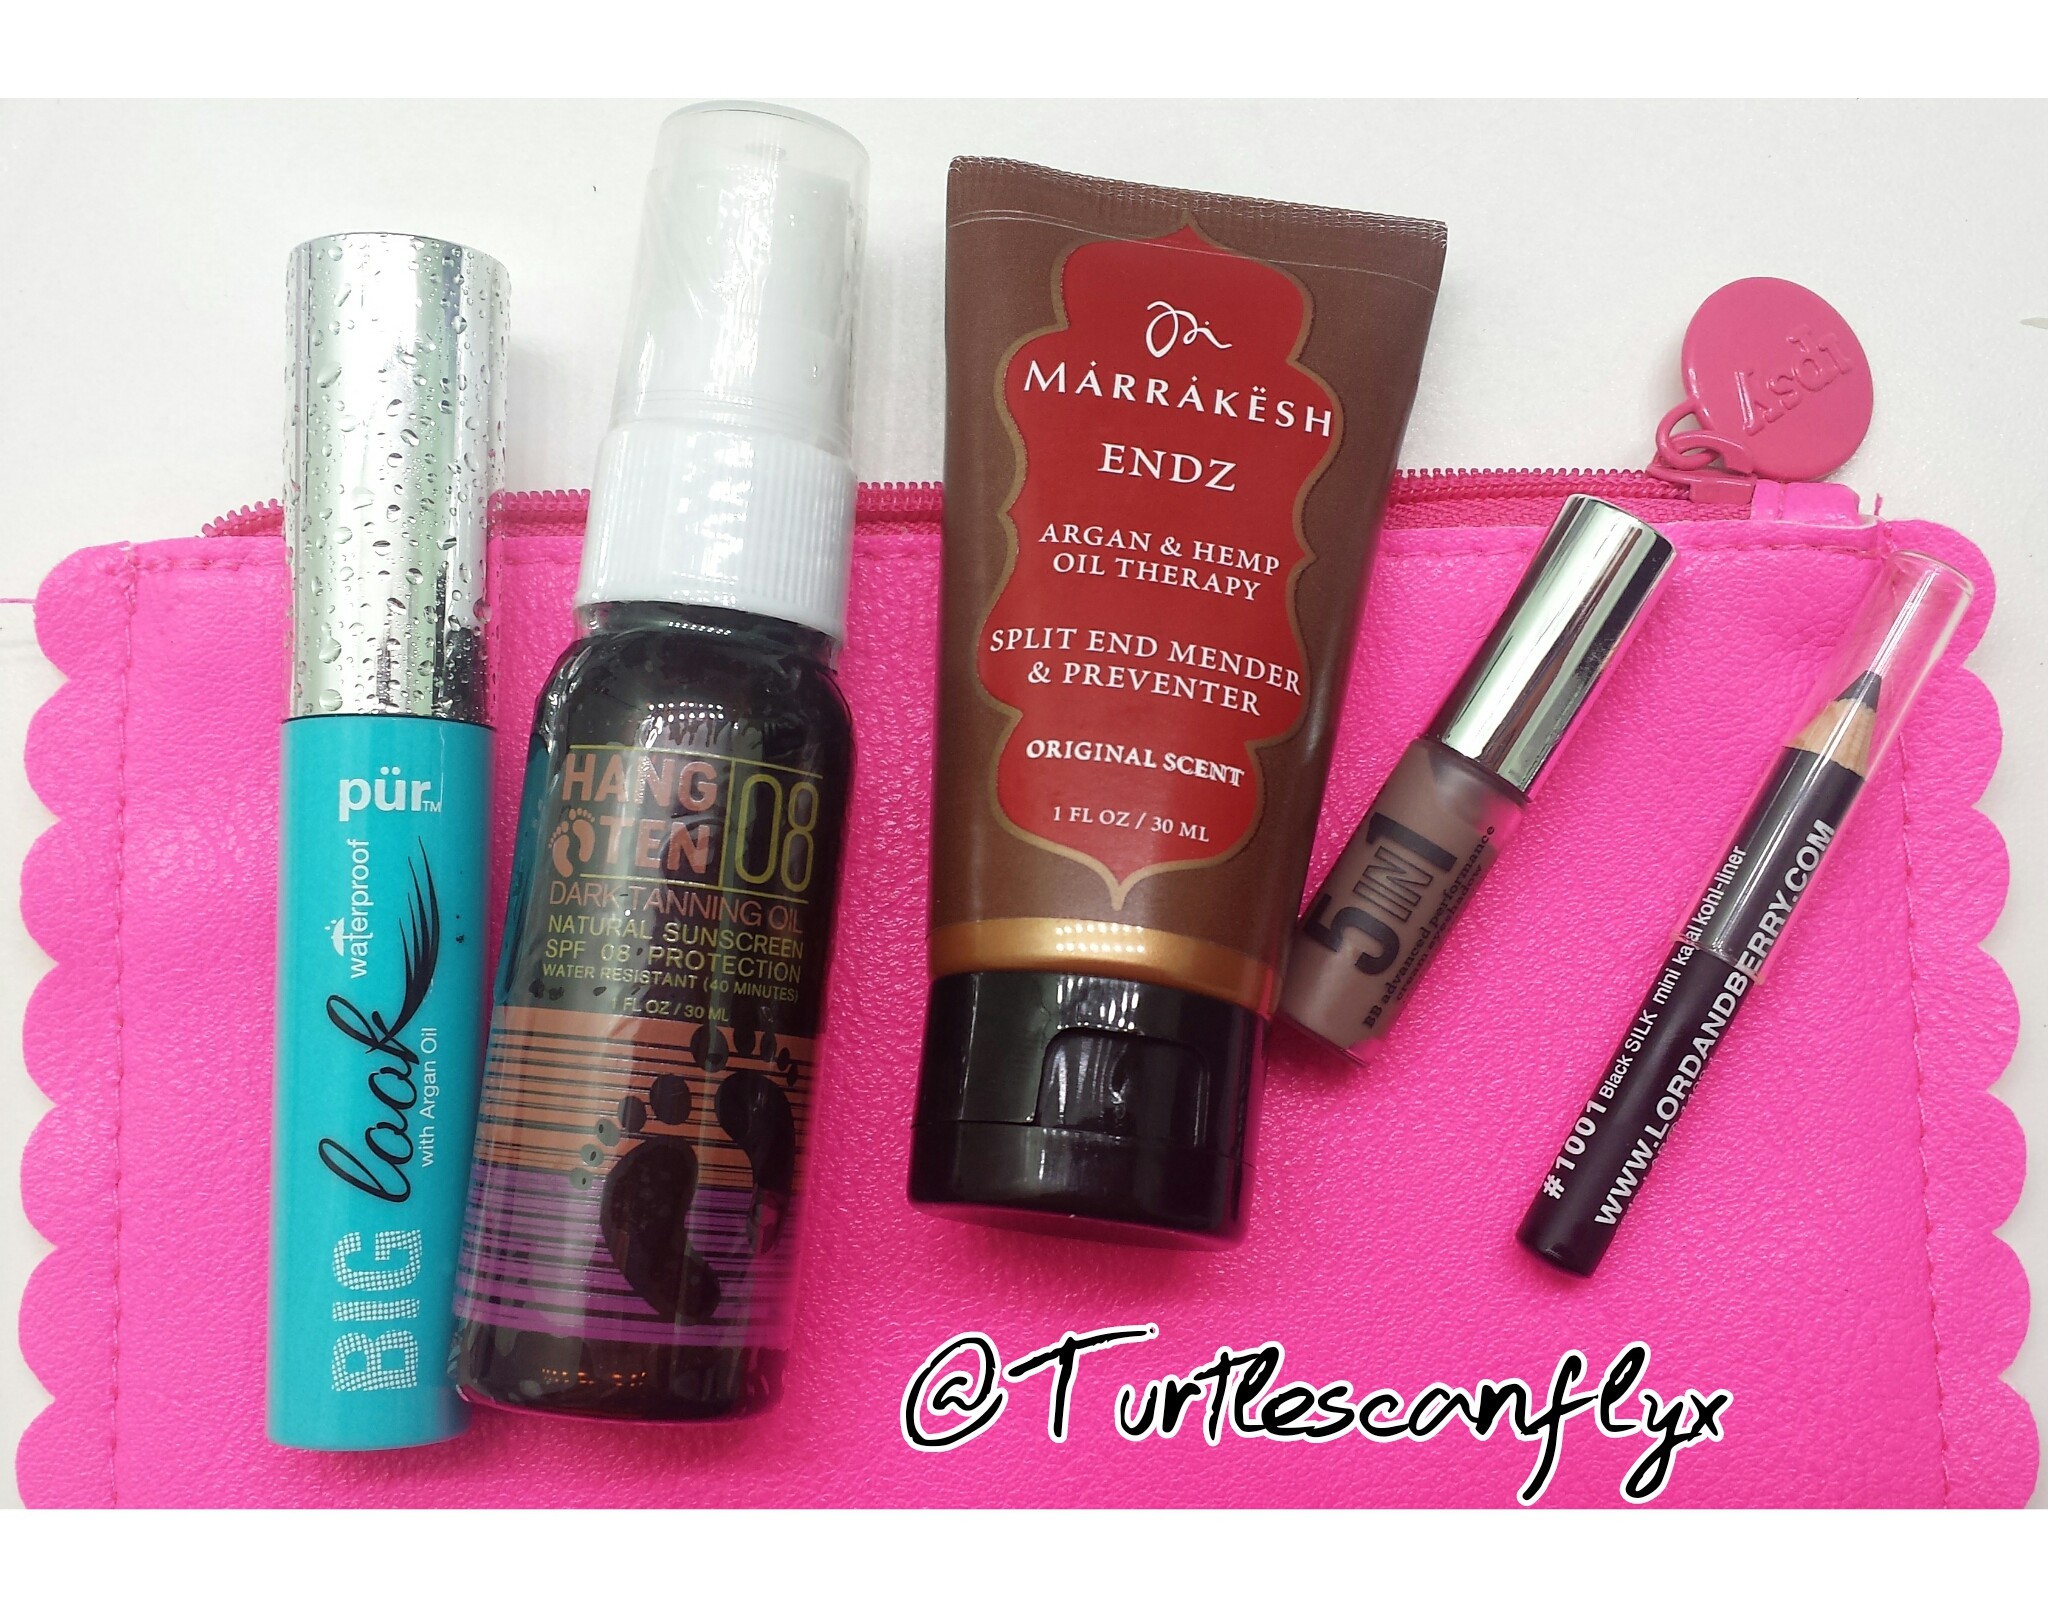 IPSY July 2014 Overview • Girl with Glam - Girl with Glam